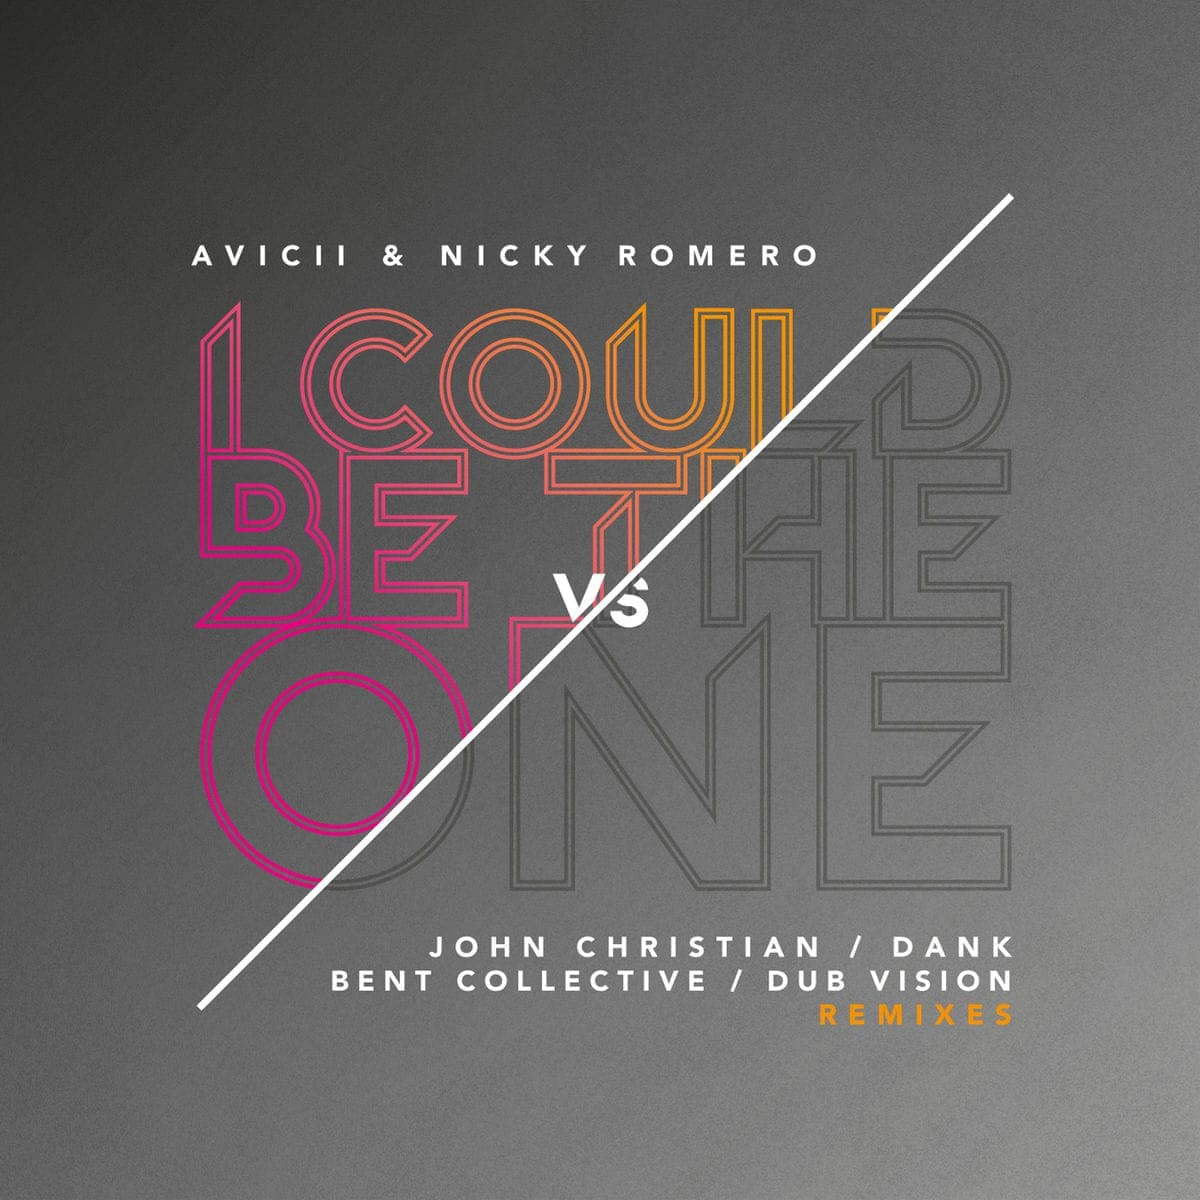 I Could Be The One (Feat. Nicky Romero) - Avicii